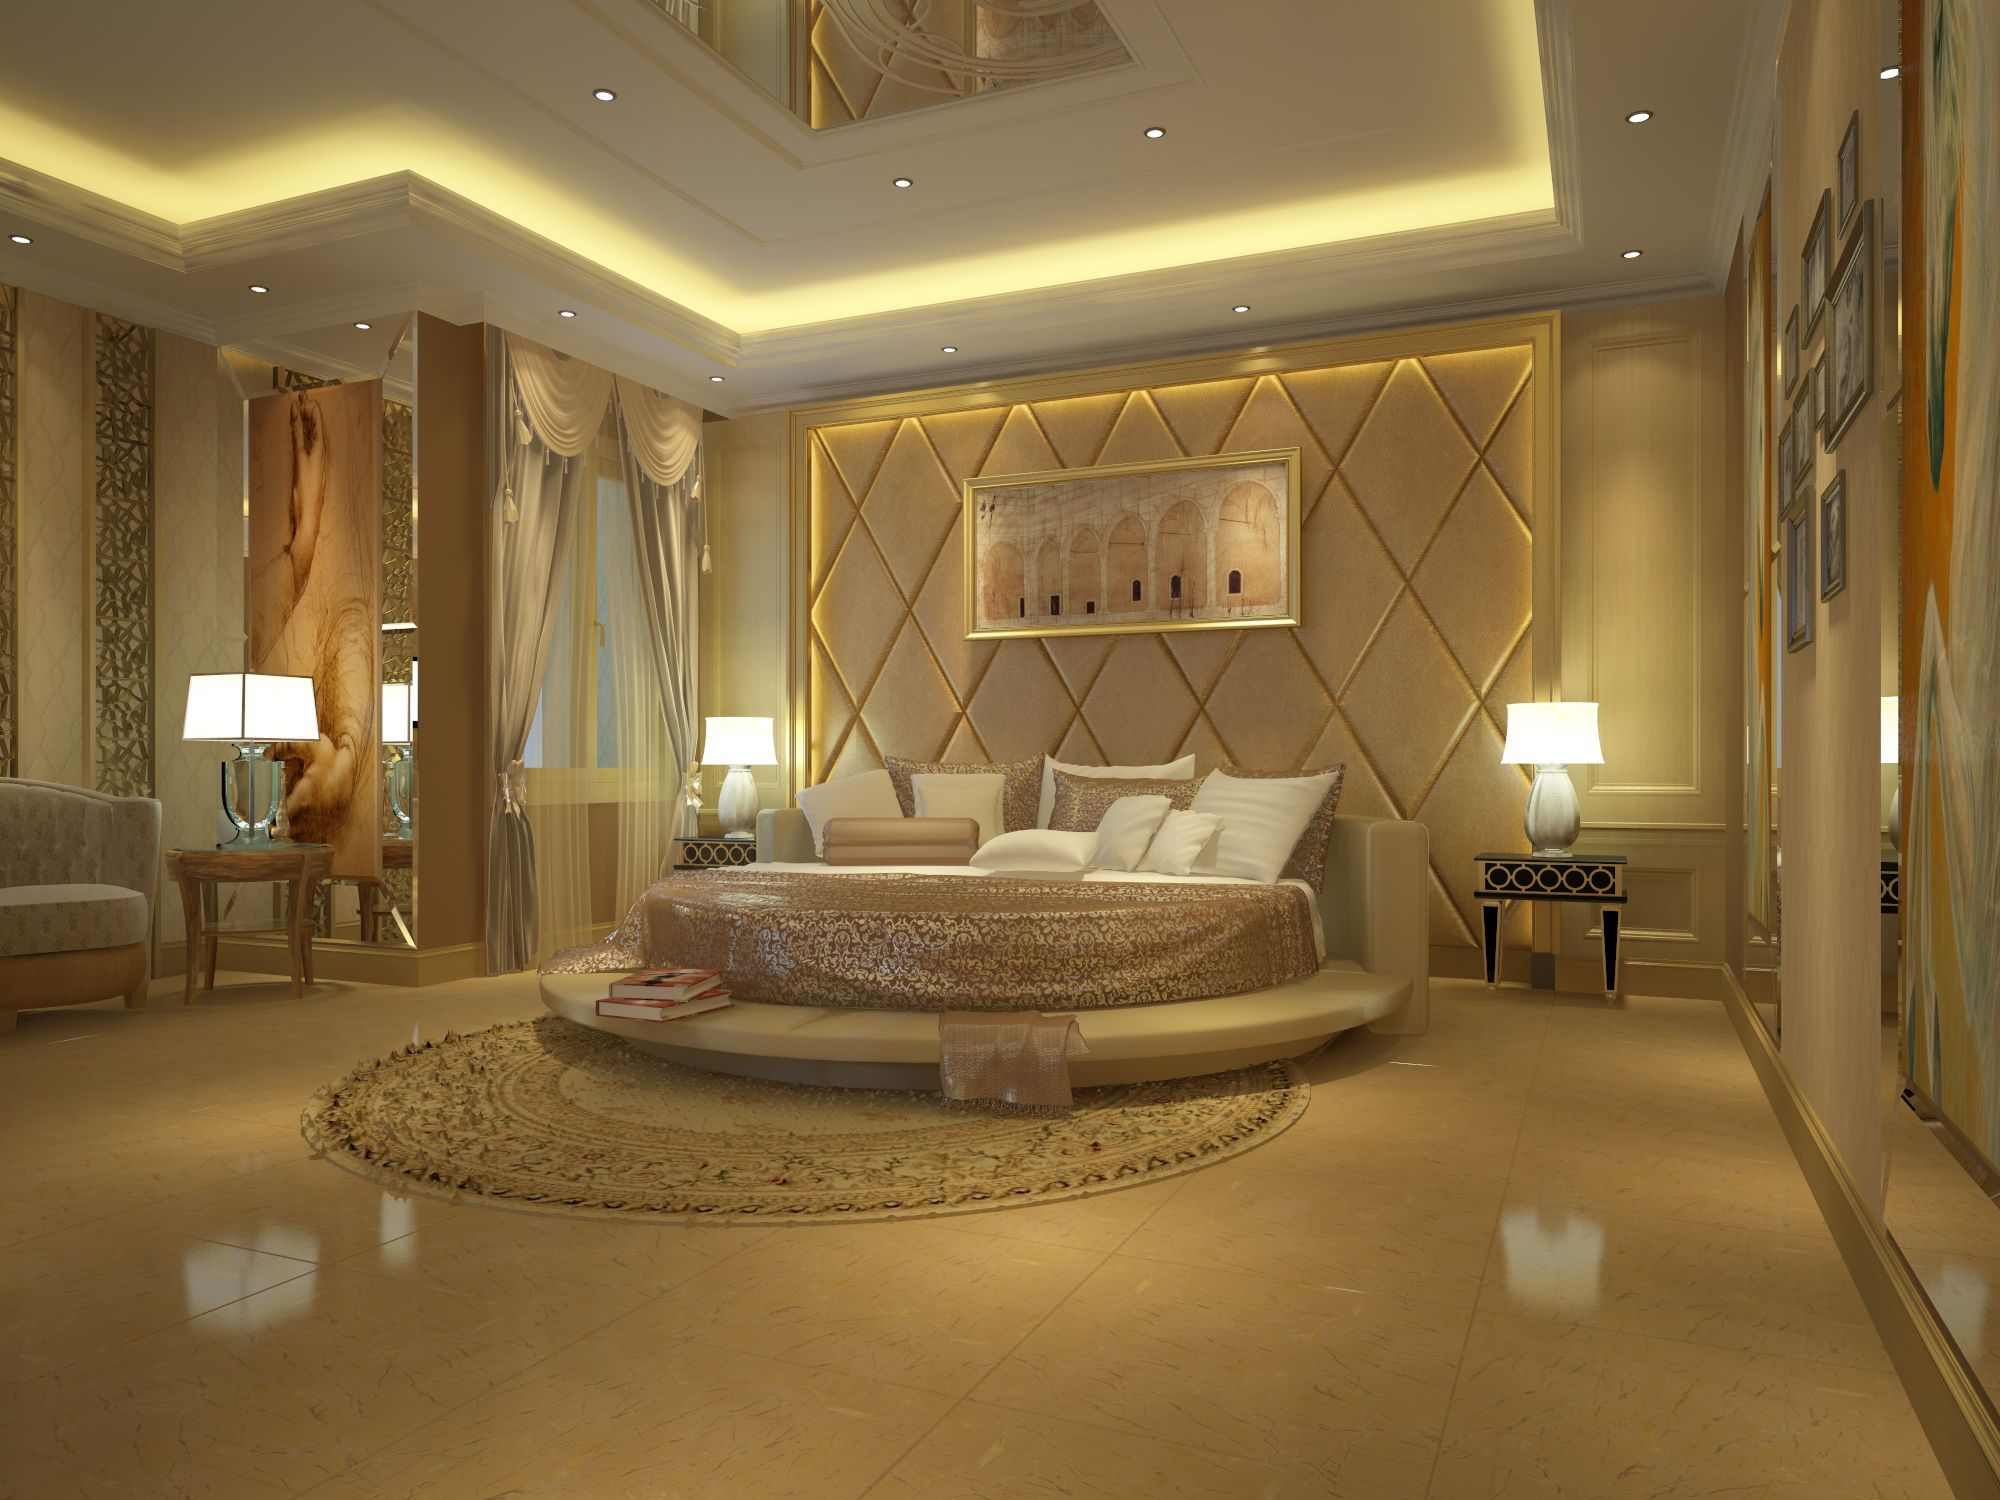 Luxury Bedroom Luxury Bedrooms Design Ideas